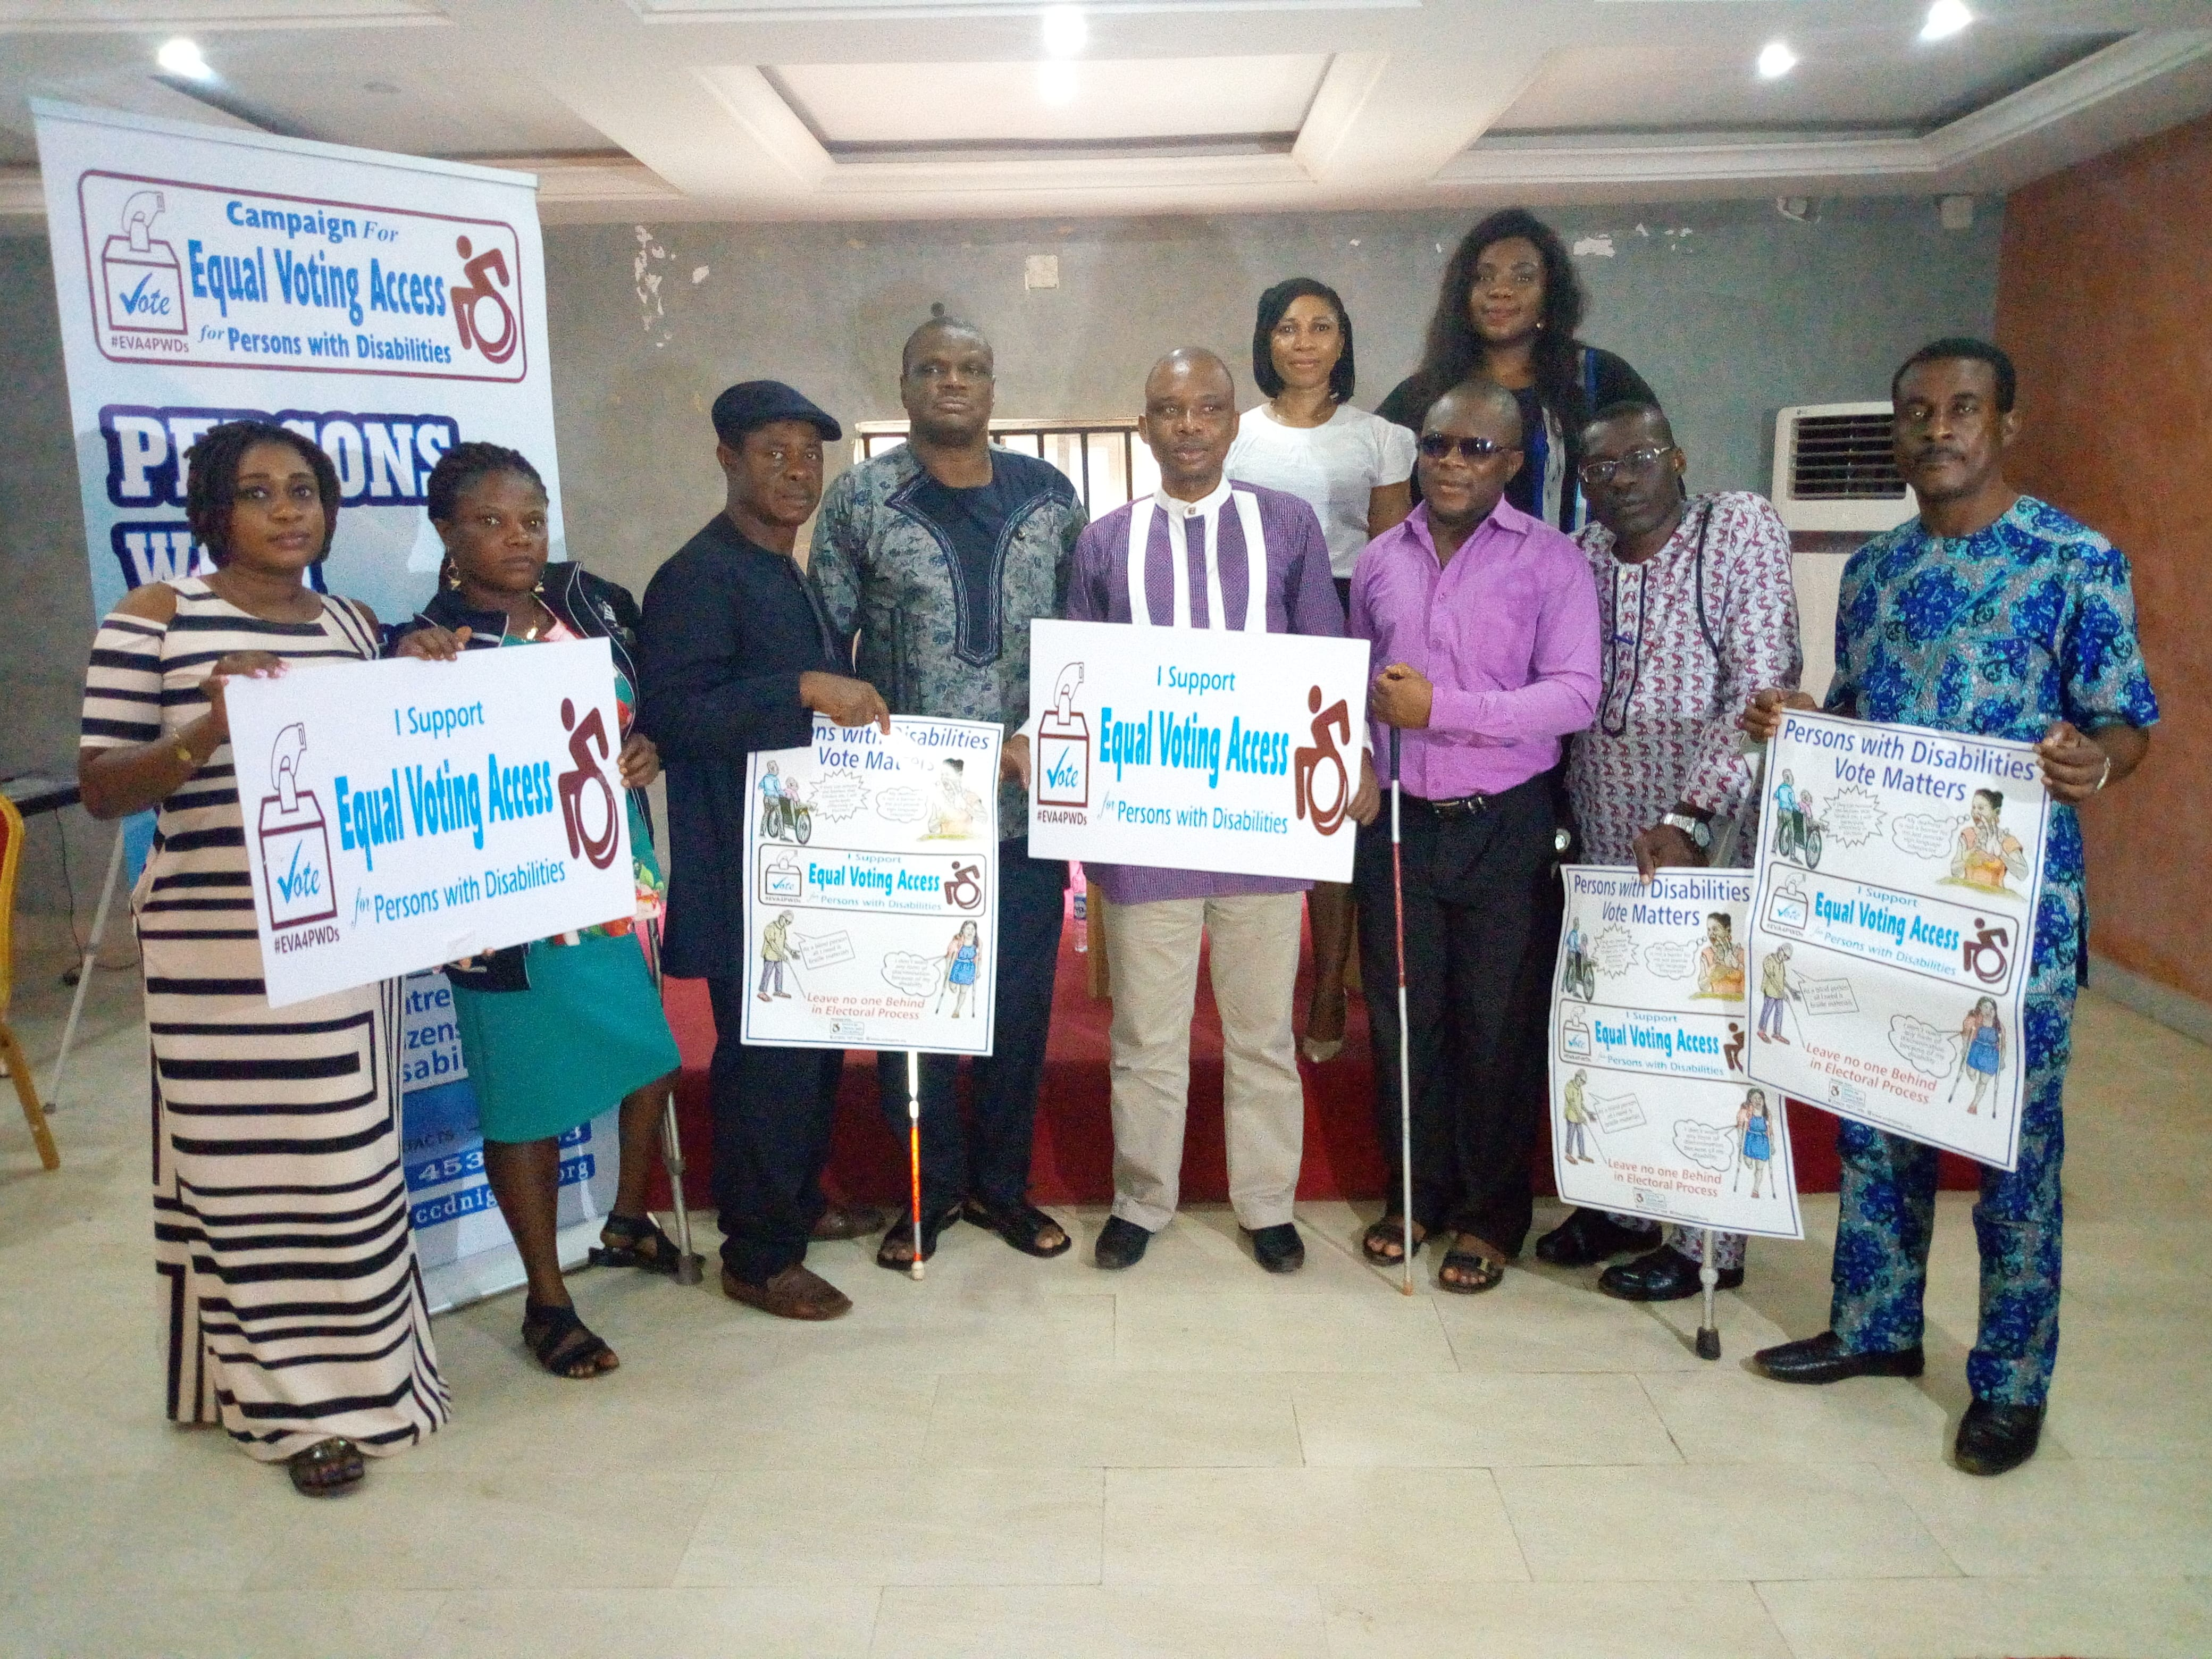 ANAMBRA GUBER ELECTION: CCD LAUNCHES A CAMPAIGN FOR EQUAL VOTING ACCESS FOR PERSONS WITH DISABILITIES AT, AWKA.